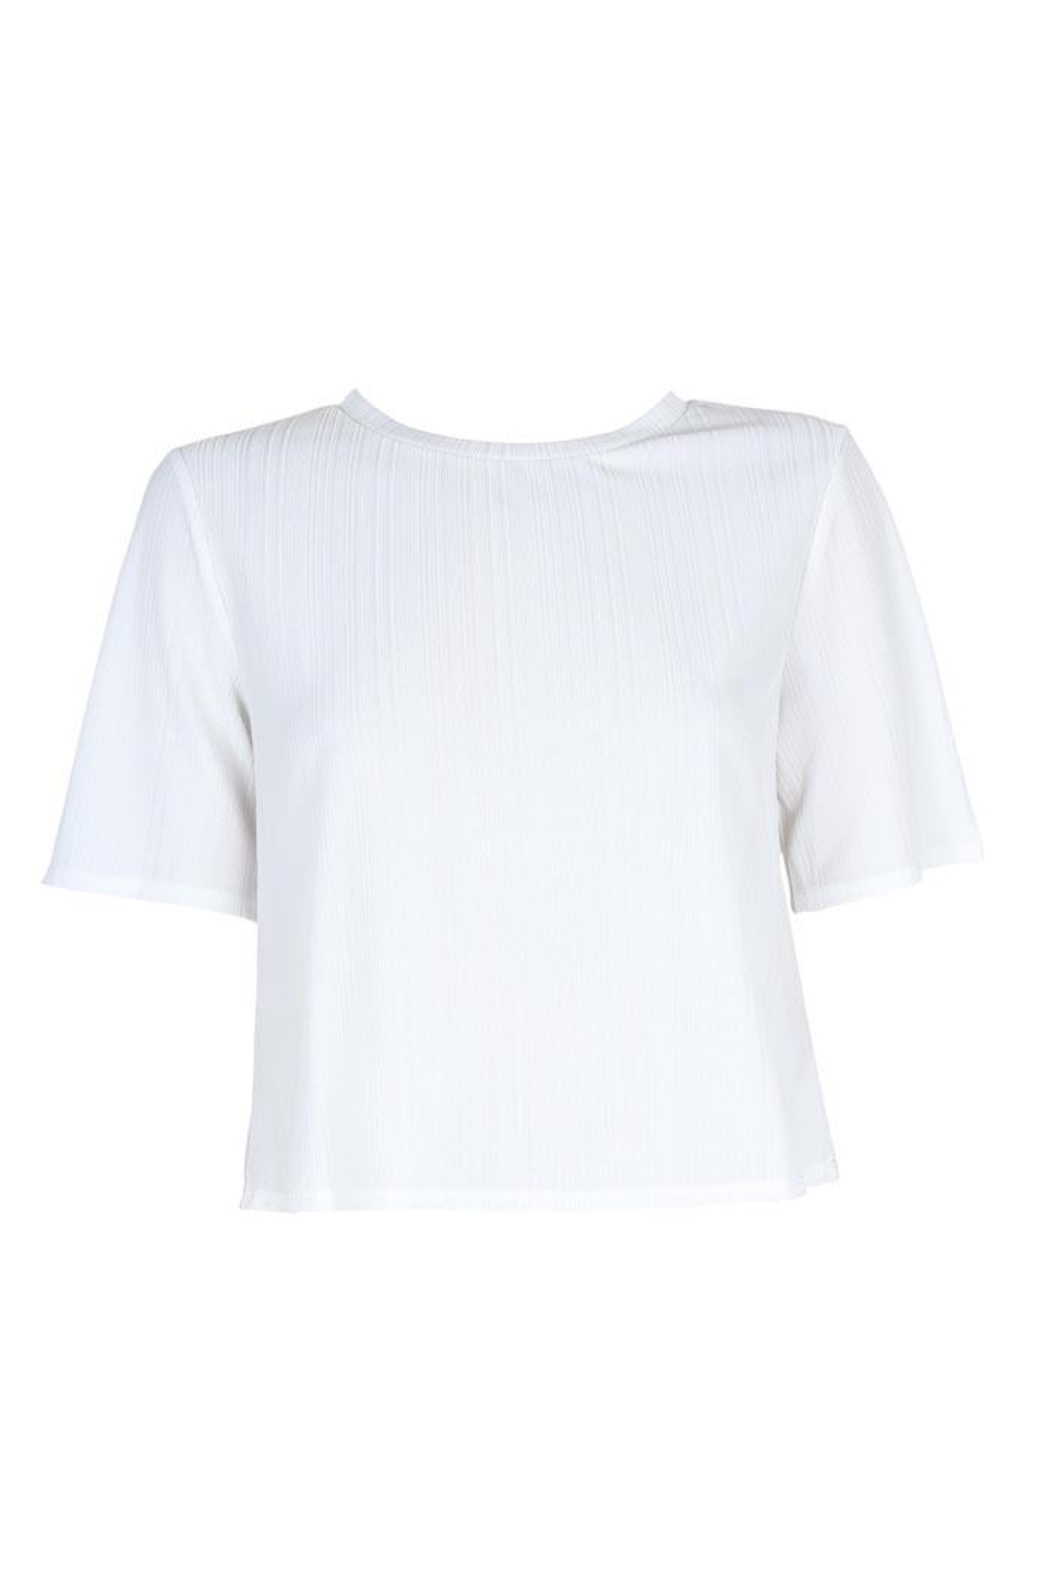 MinkPink Ribbed Cropped Tee - Side Cropped Image